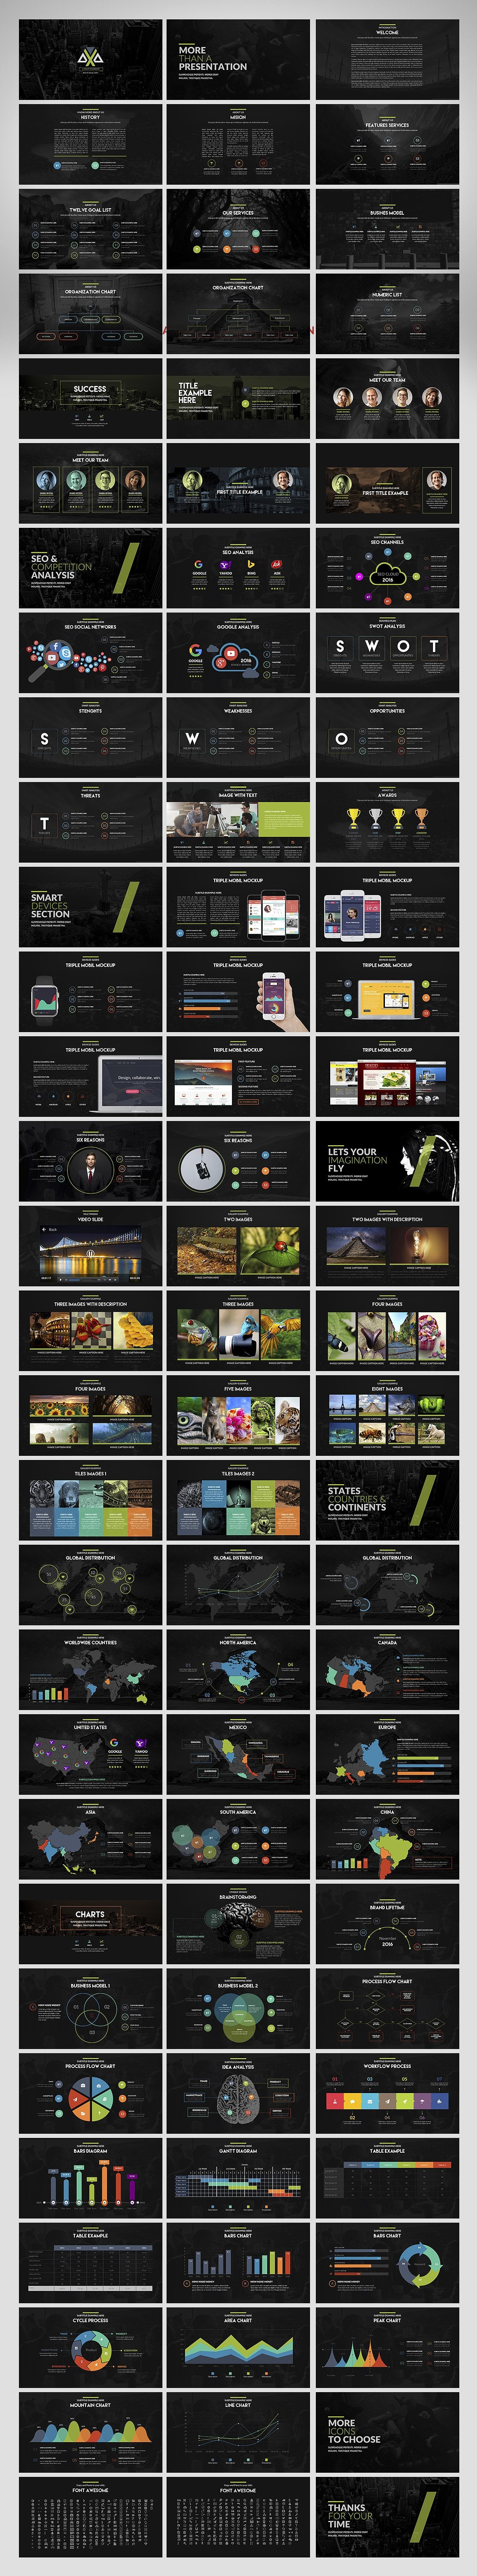 20 Powerpoint Templates with 81% OFF - Axa 02